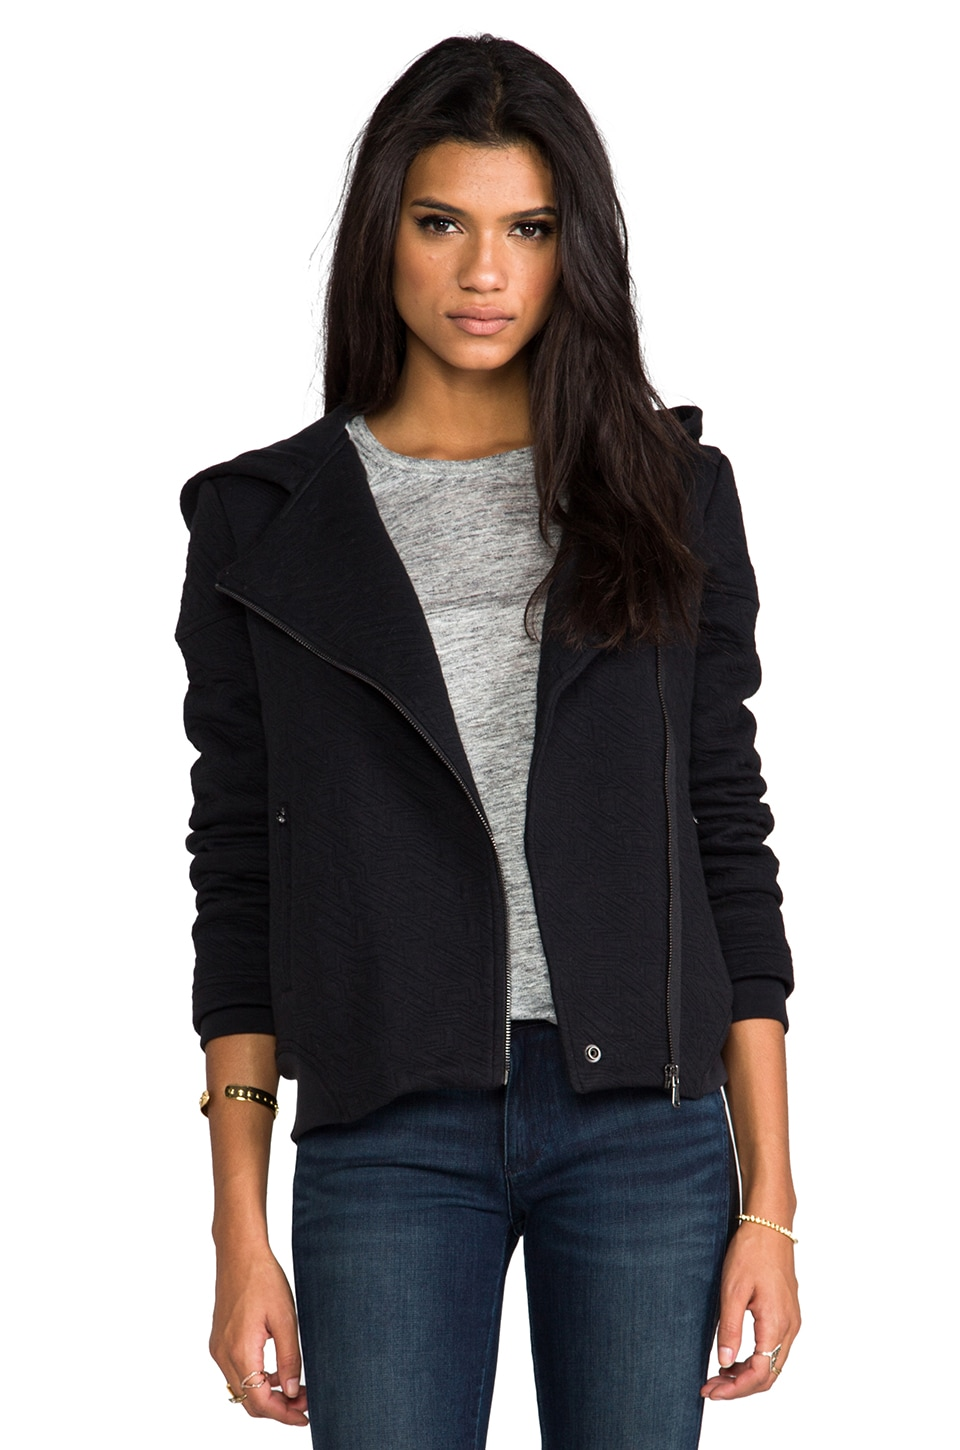 Marc by Marc Jacobs Cleo Quilted Jacket in Black